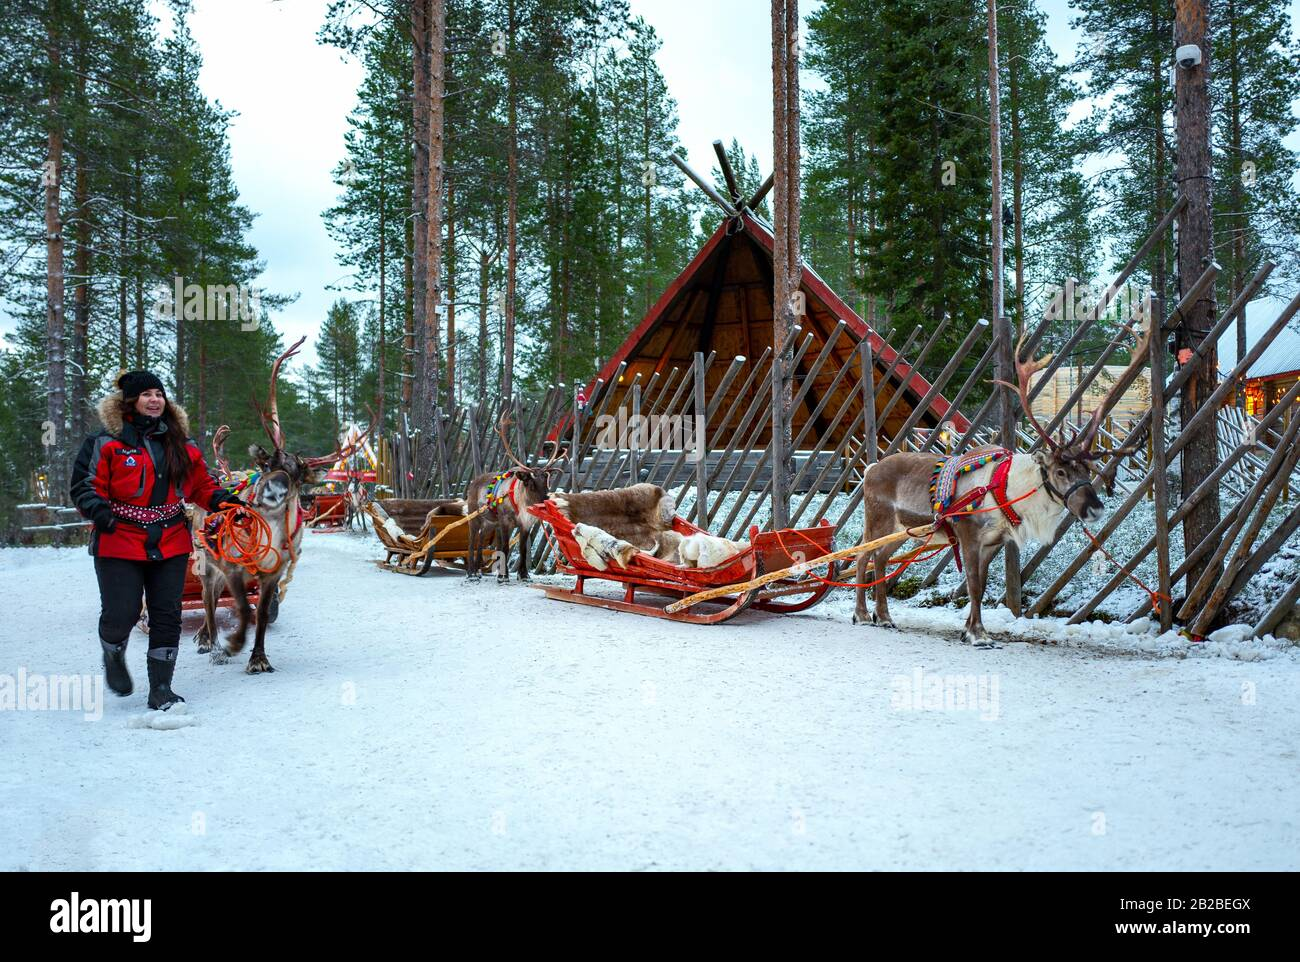 Rovaniemi, Finland, Tourists on reindeer-drawn sledges in the Santa Claus Village and Park Stock Photo